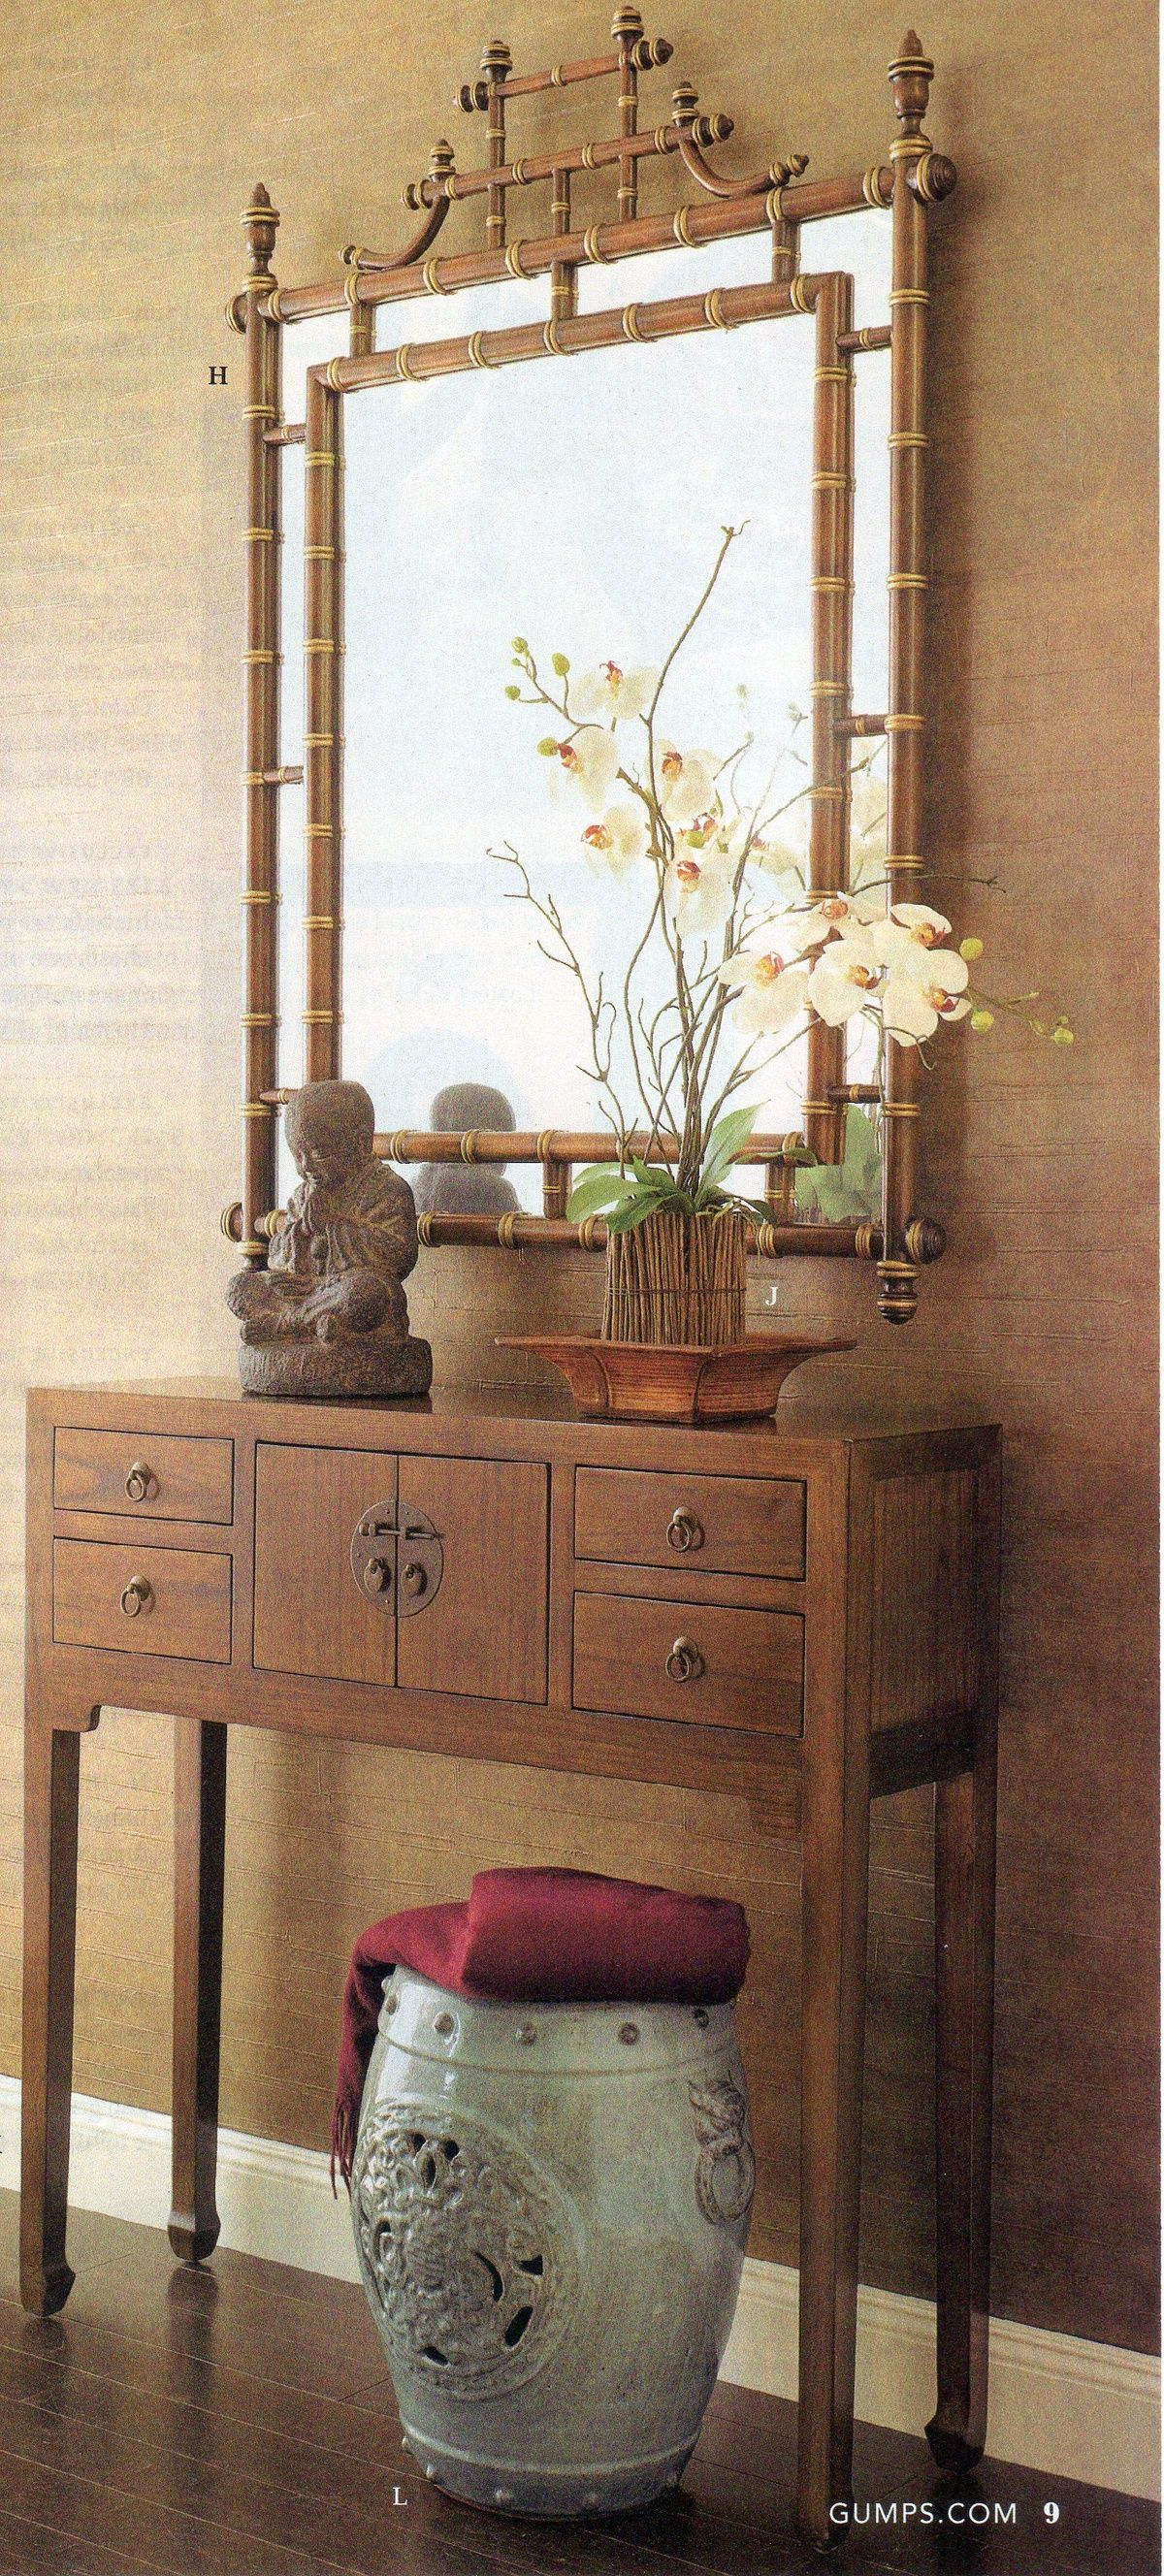 Decoration Asiatique Maison Pin By Kathie Randolph On Asian Decor Mobilier De Salon